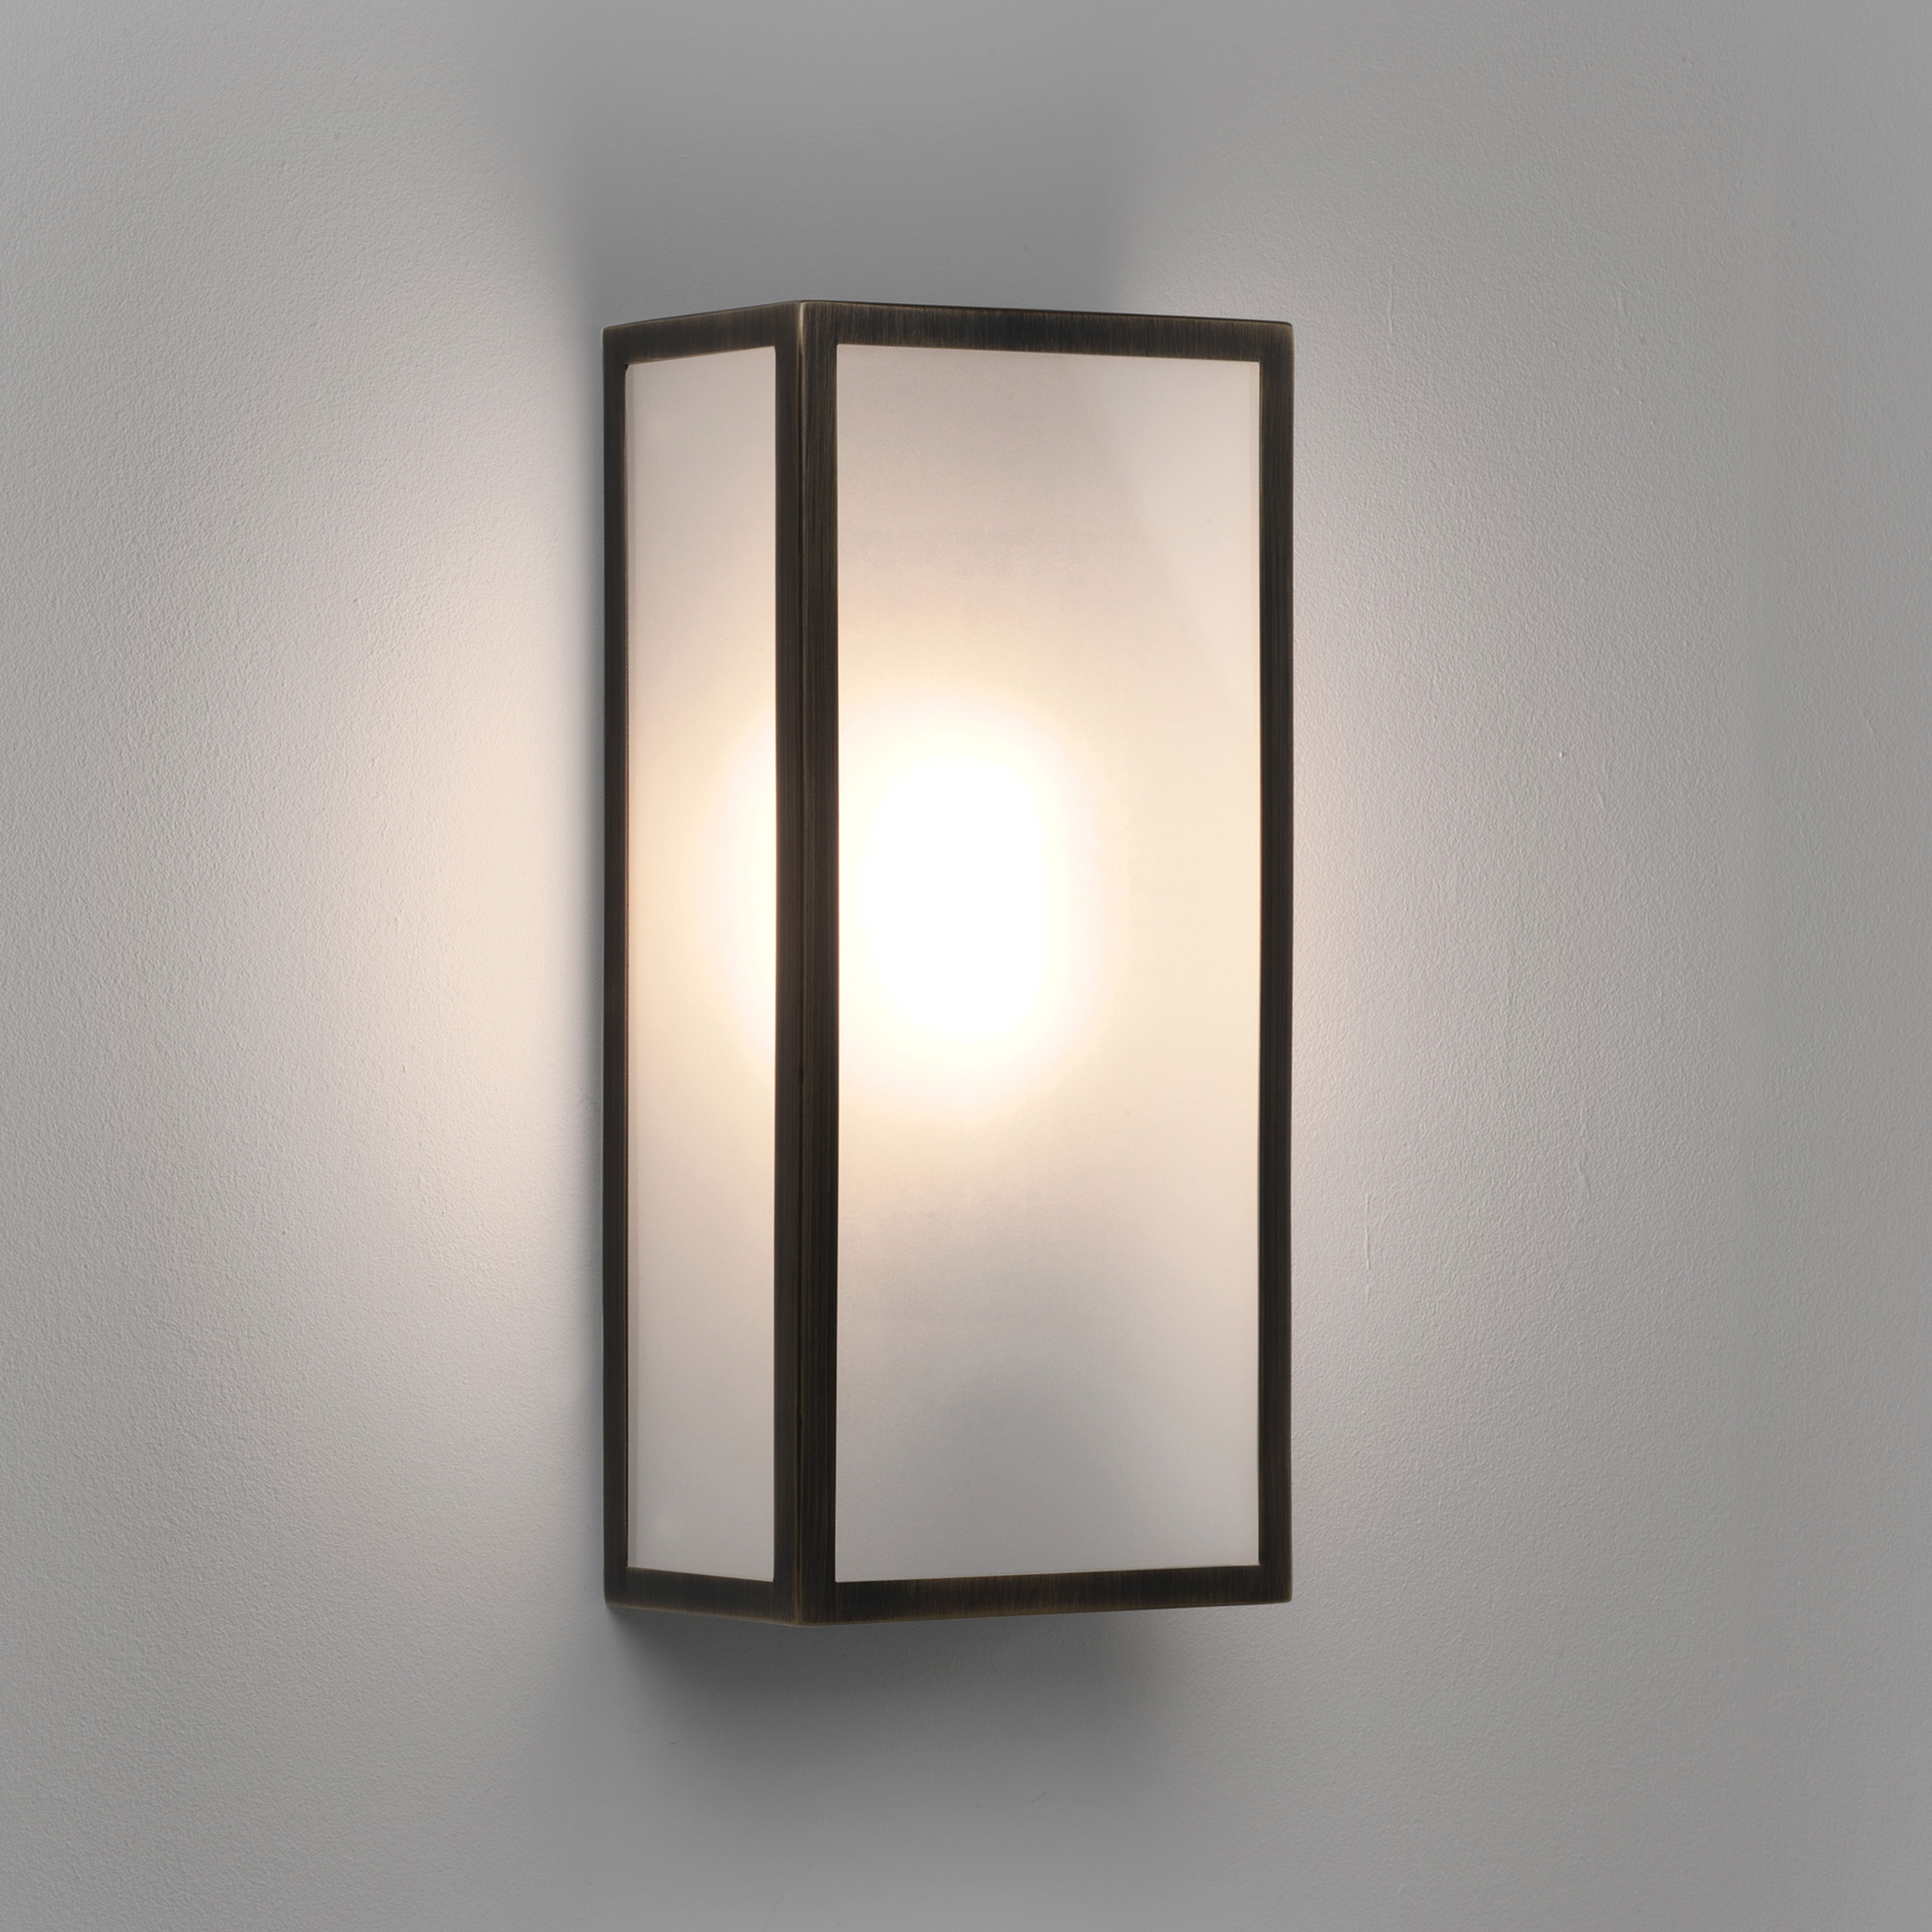 Wall Lamps External : Astro Messina exterior external wall light 60W E27 bronze frosted glass Liminaires